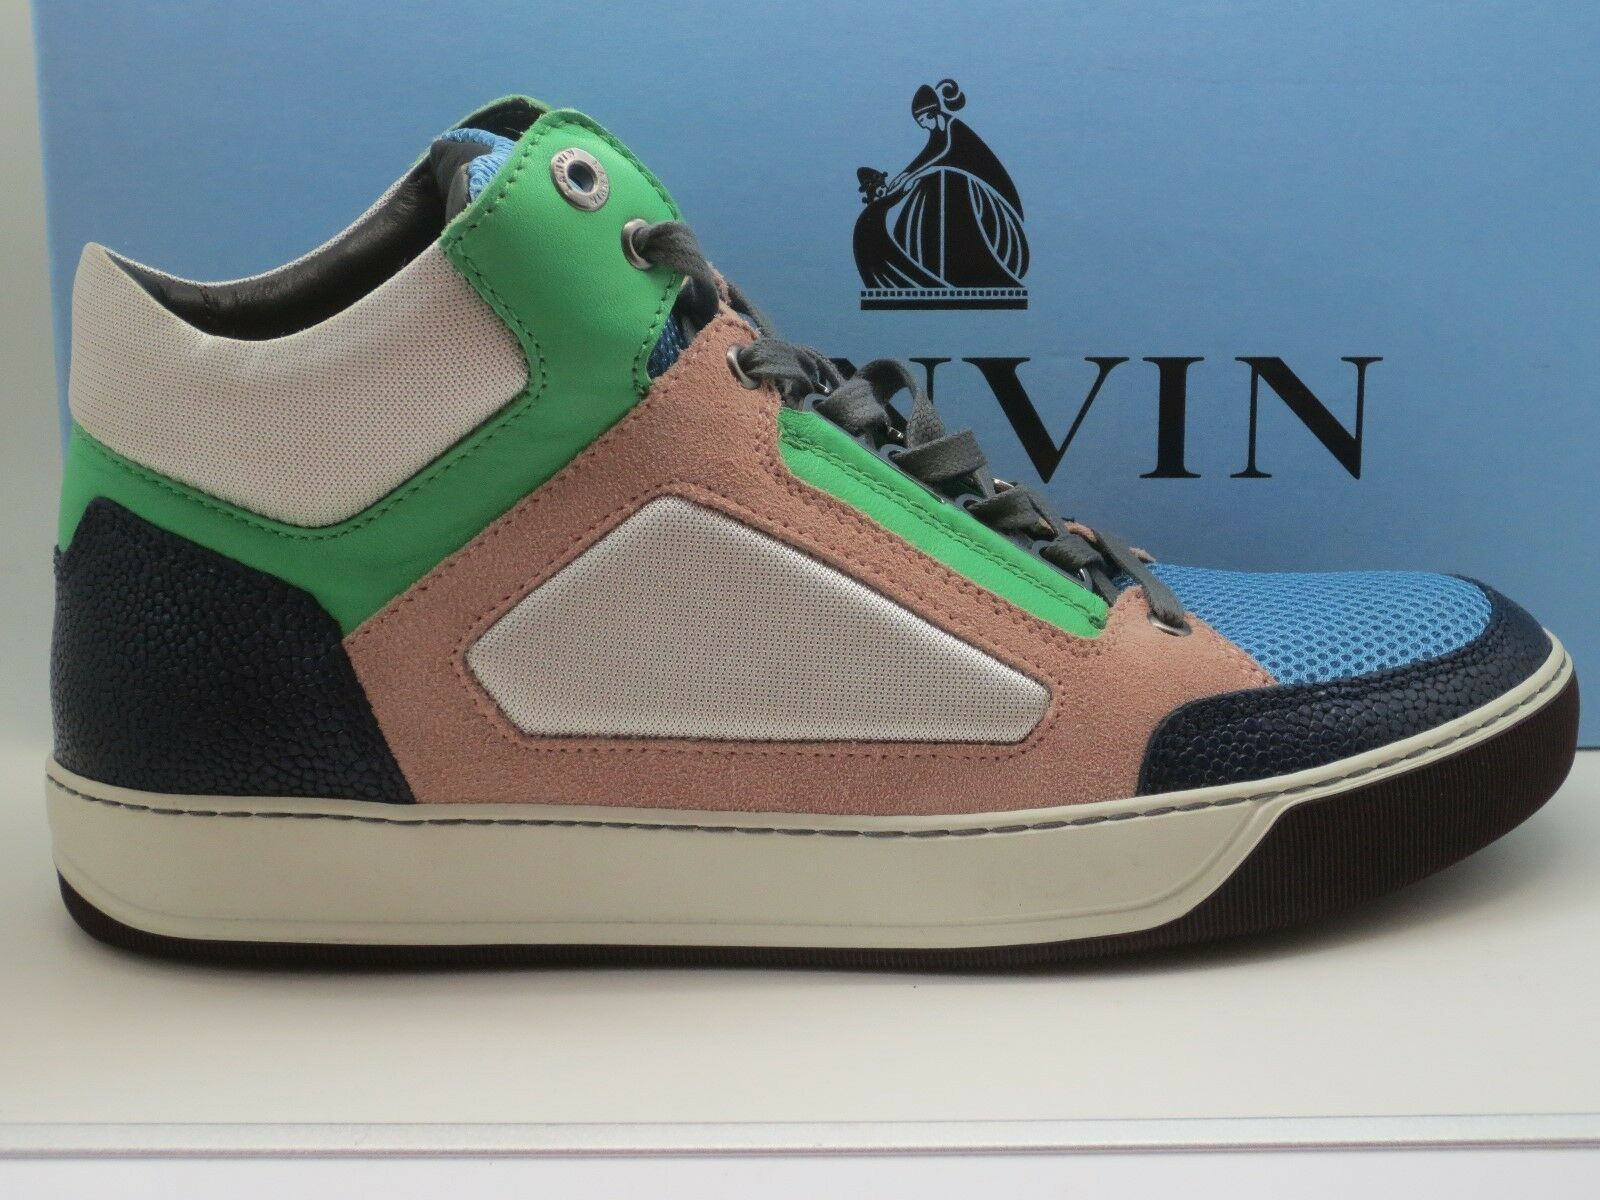 680 New Lanvin Mid-Top Sneakers pinkwood Size 9 UK US 10 Authentic in Box